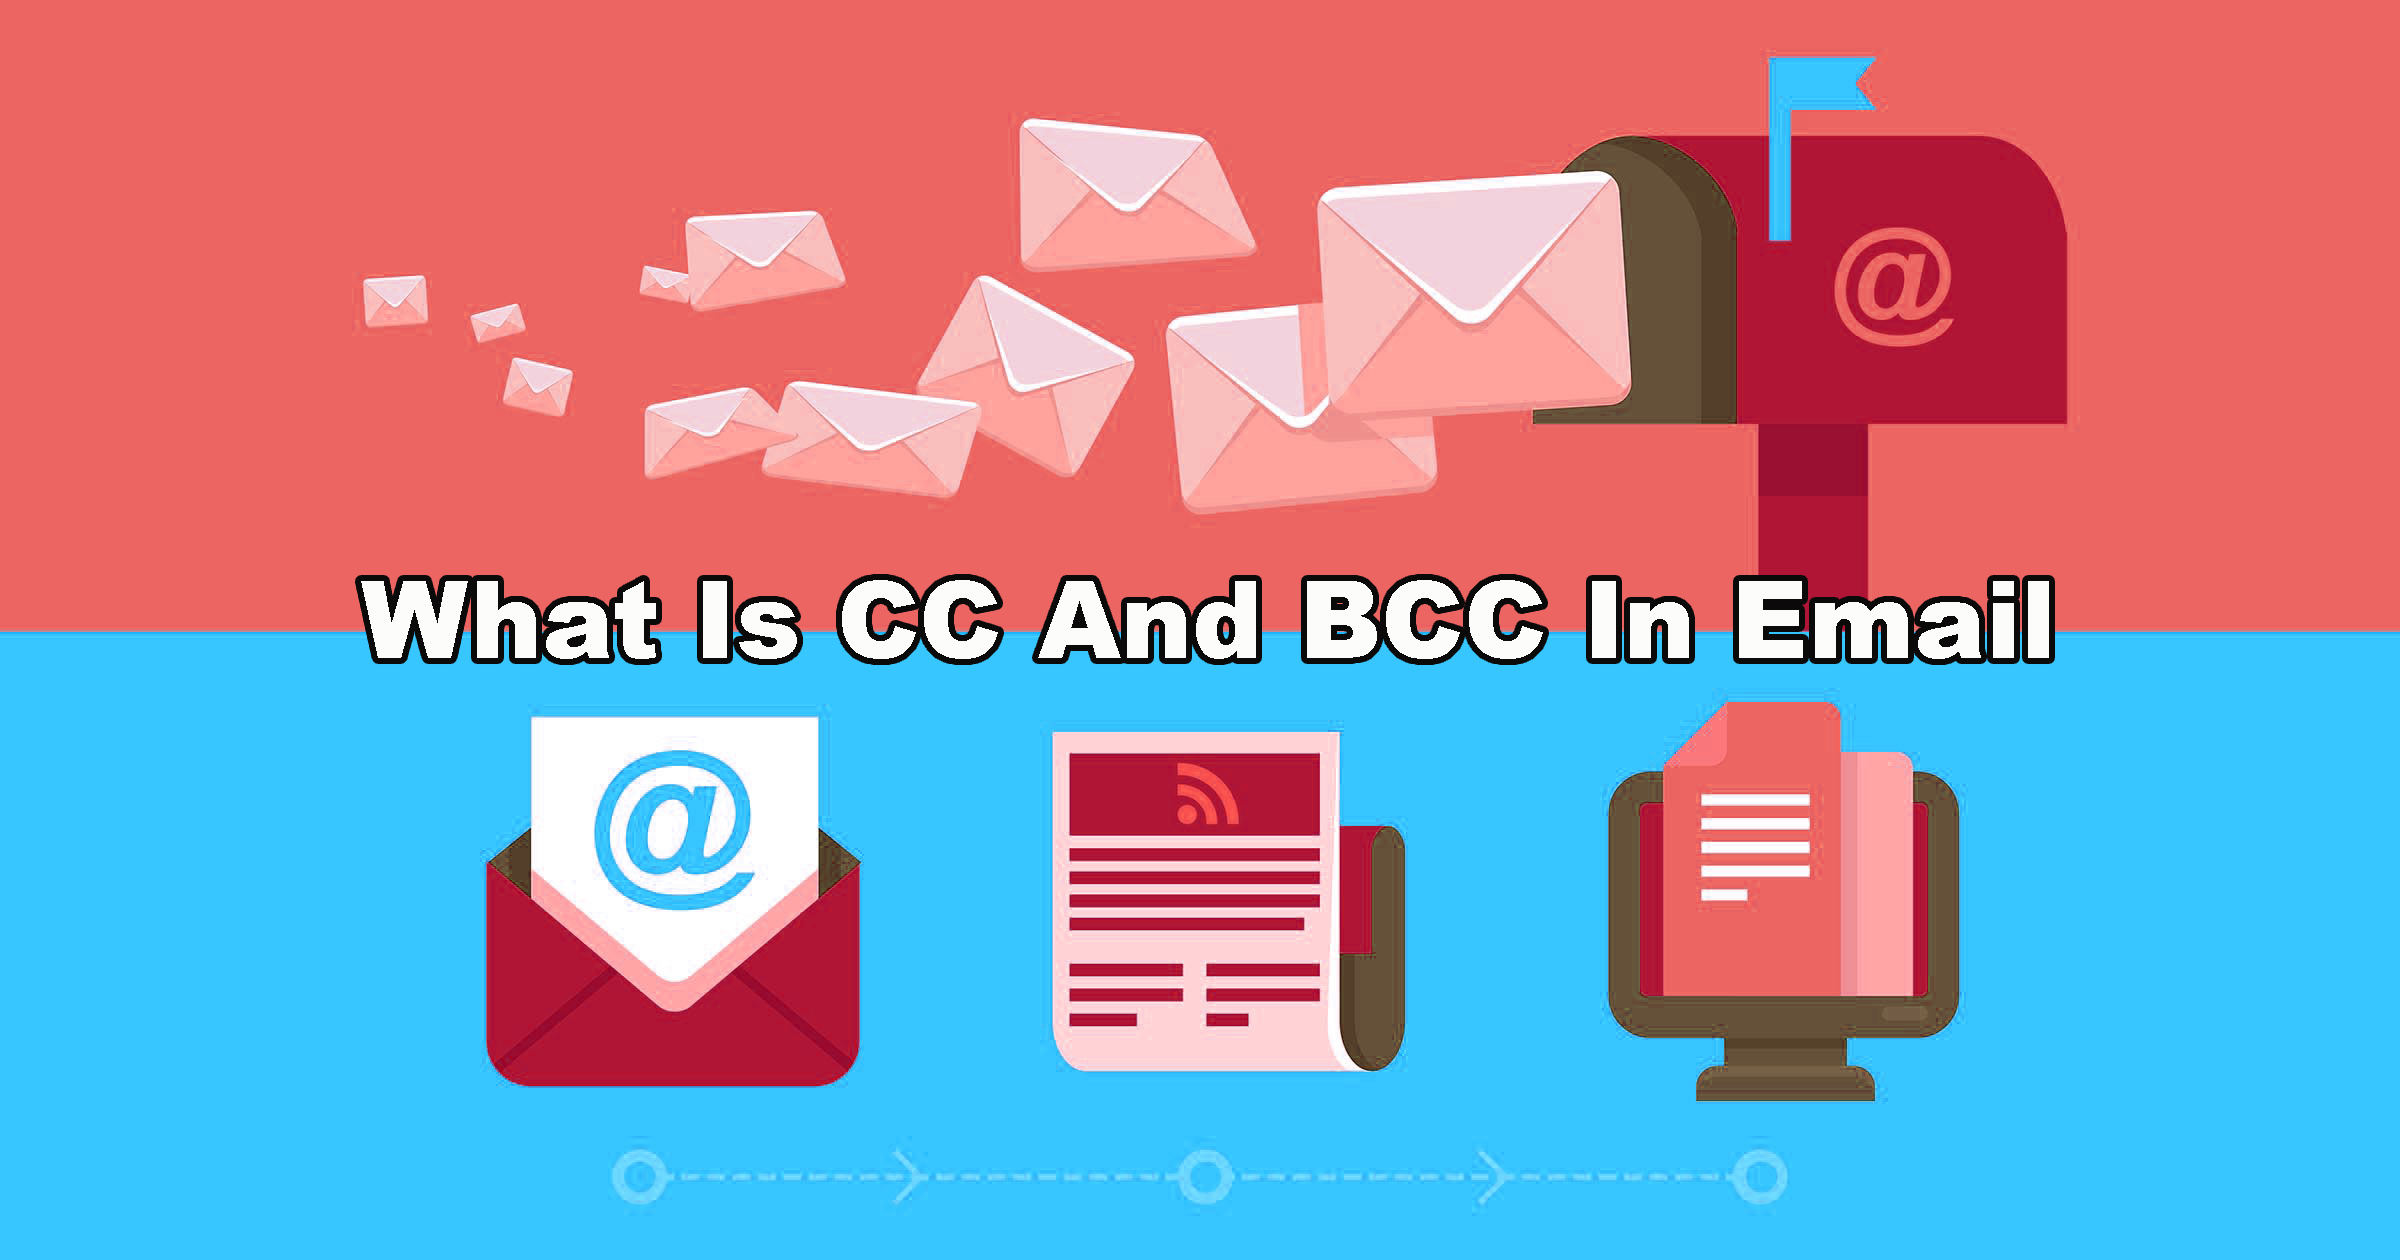 What Is CC And BCC In Email